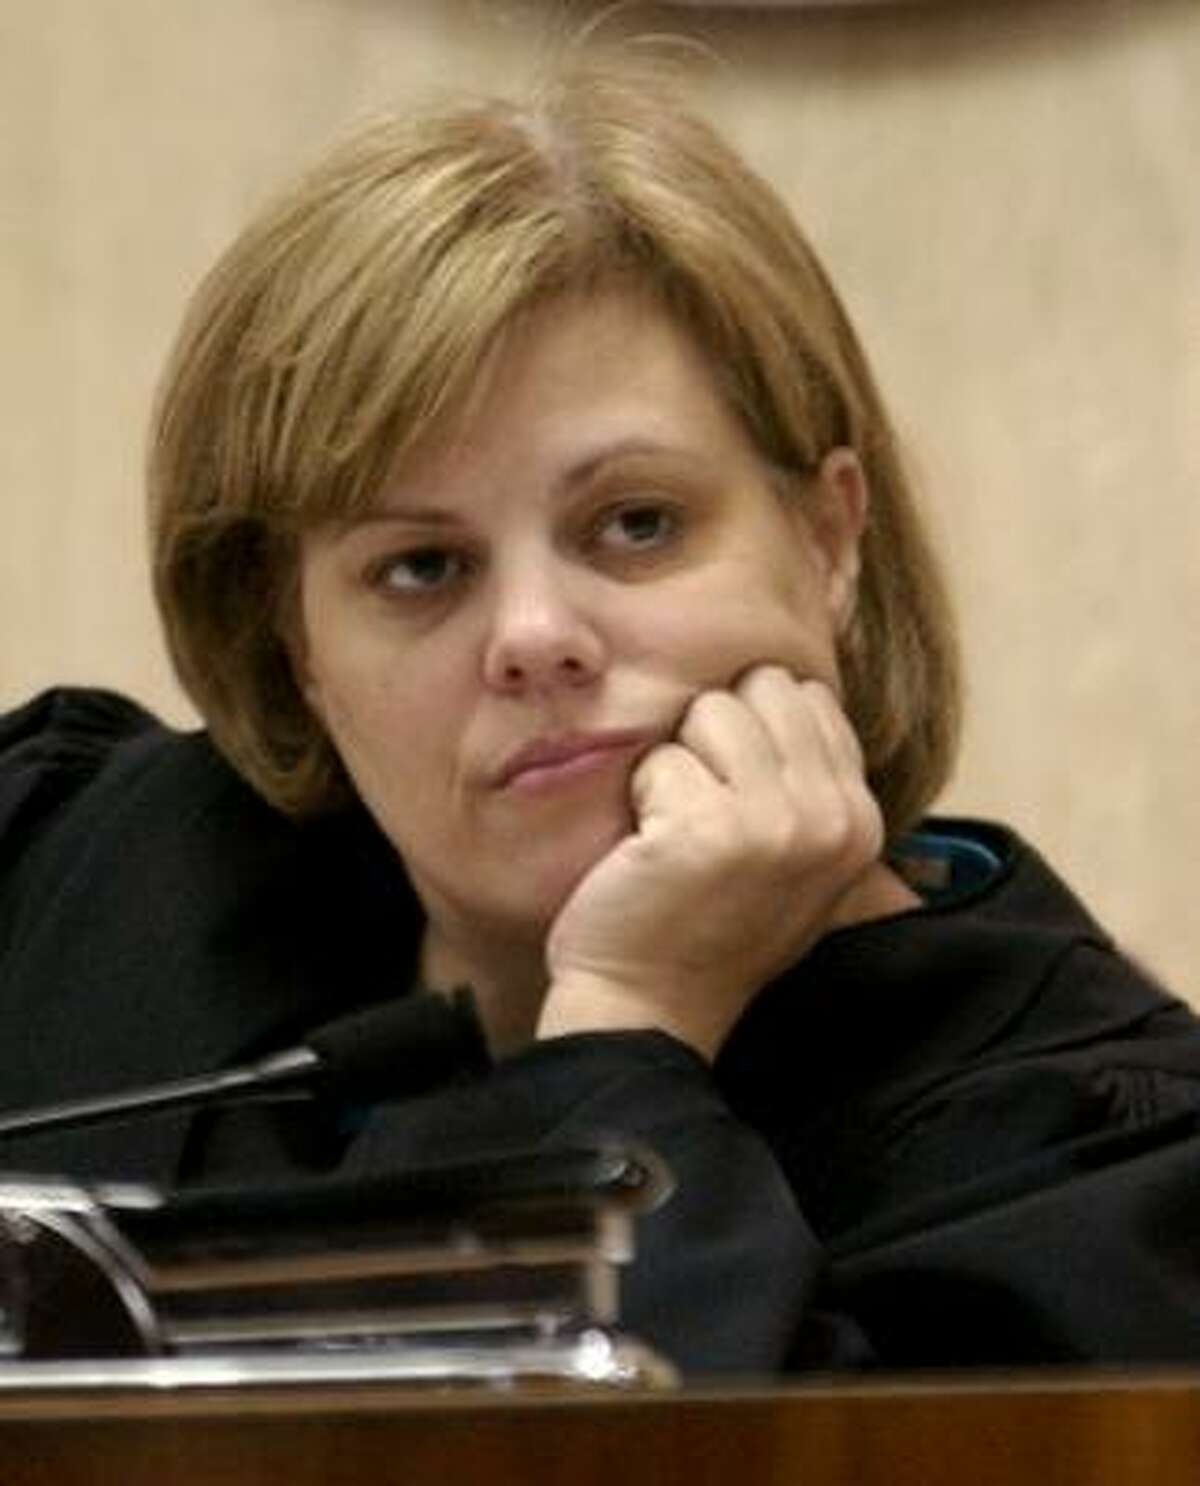 Judge Susan Criss is concerned that Dupuy could be a threat to others.